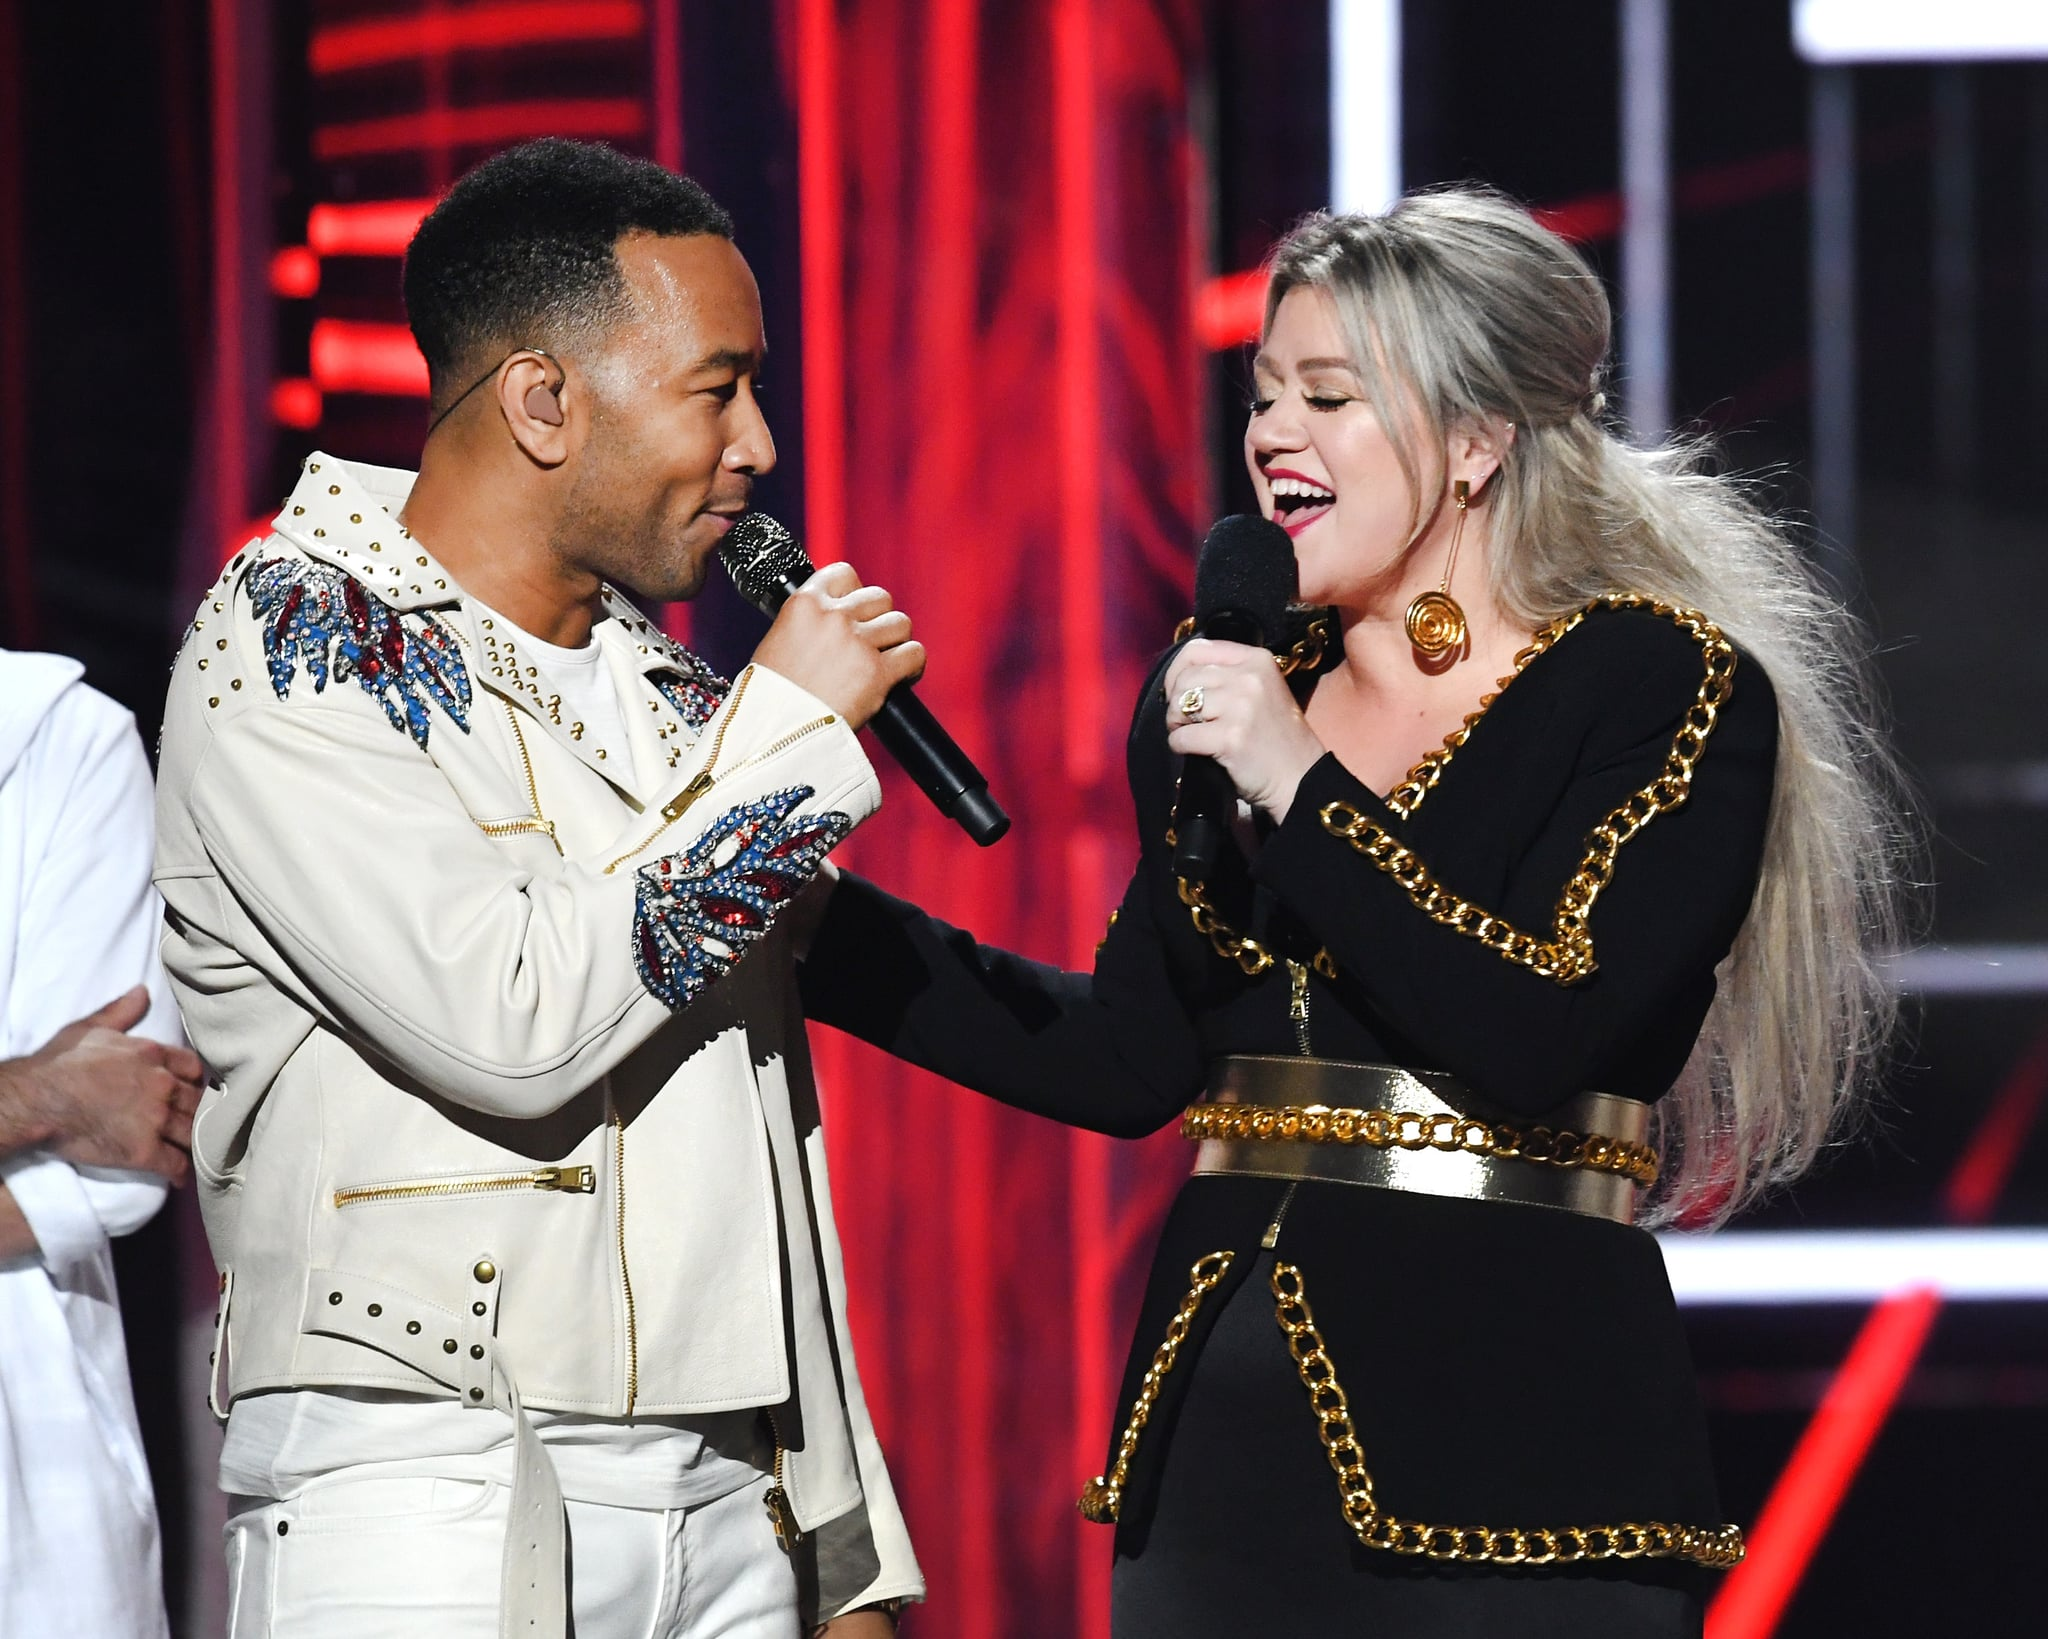 LAS VEGAS, NV - MAY 20:  Recording artist John Legend (L) and host Kelly Clarkson speak onstage during the 2018 Billboard Music Awards at MGM Grand Garden Arena on May 20, 2018 in Las Vegas, Nevada.  (Photo by Kevin Winter/Getty Images)